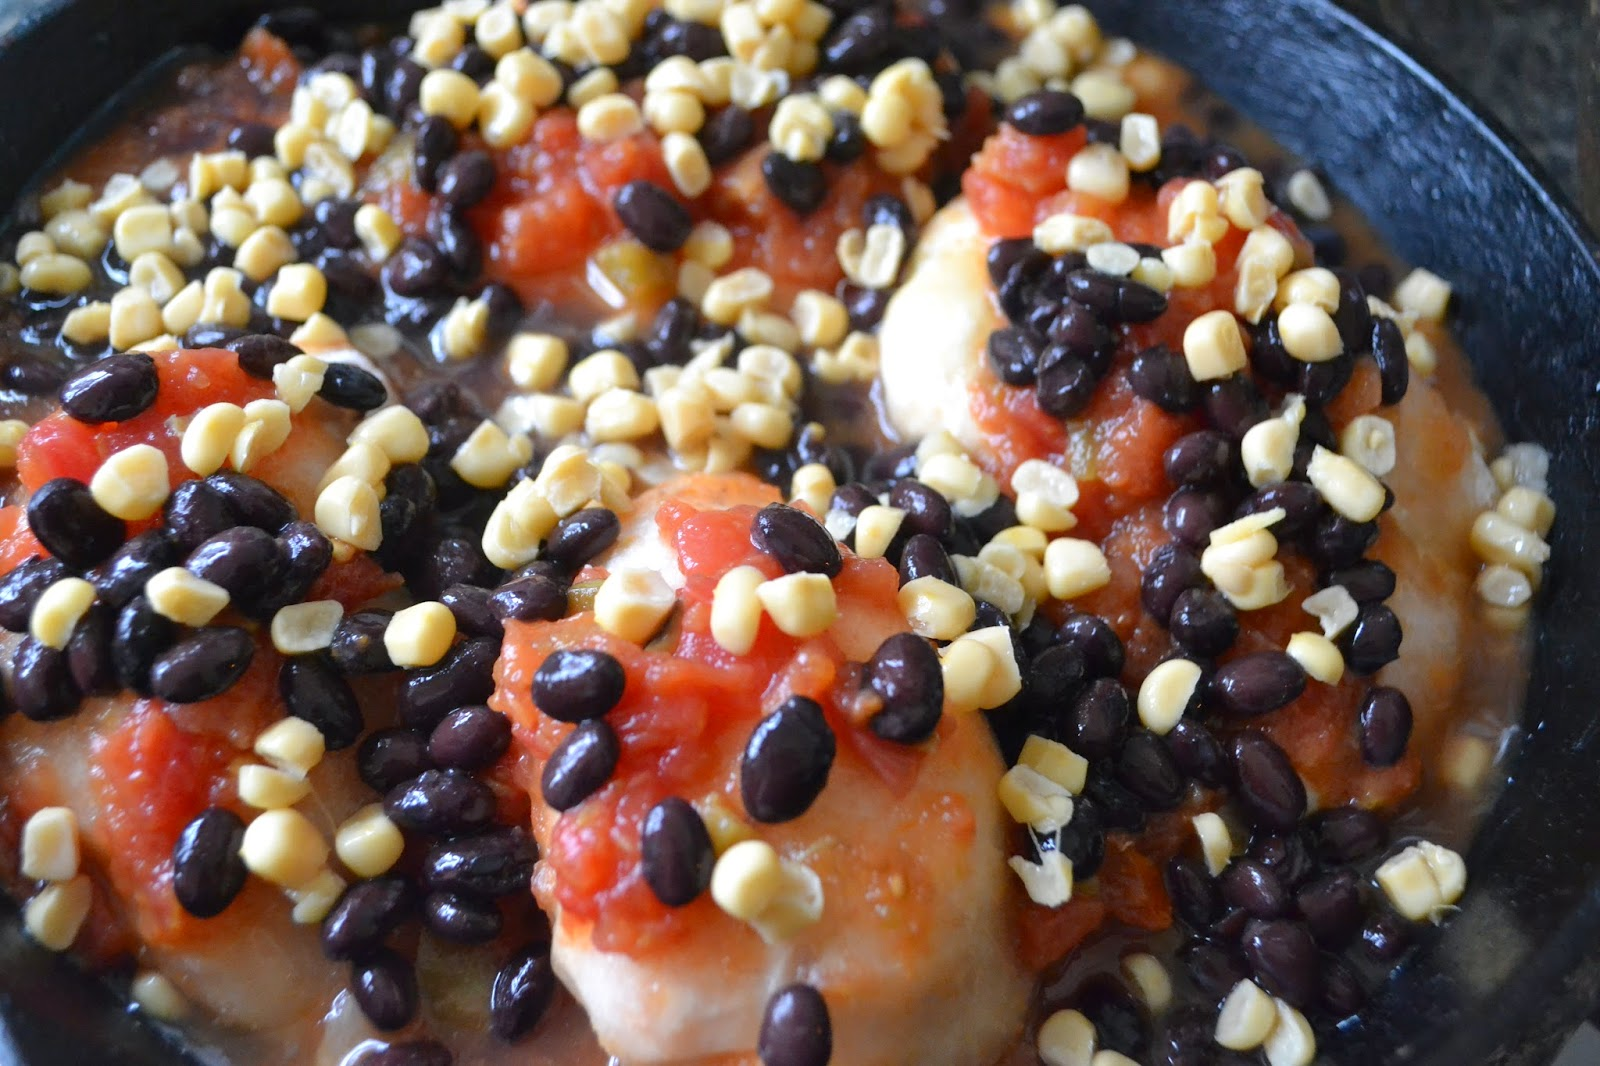 Southwest Chicken with black beans and salsa